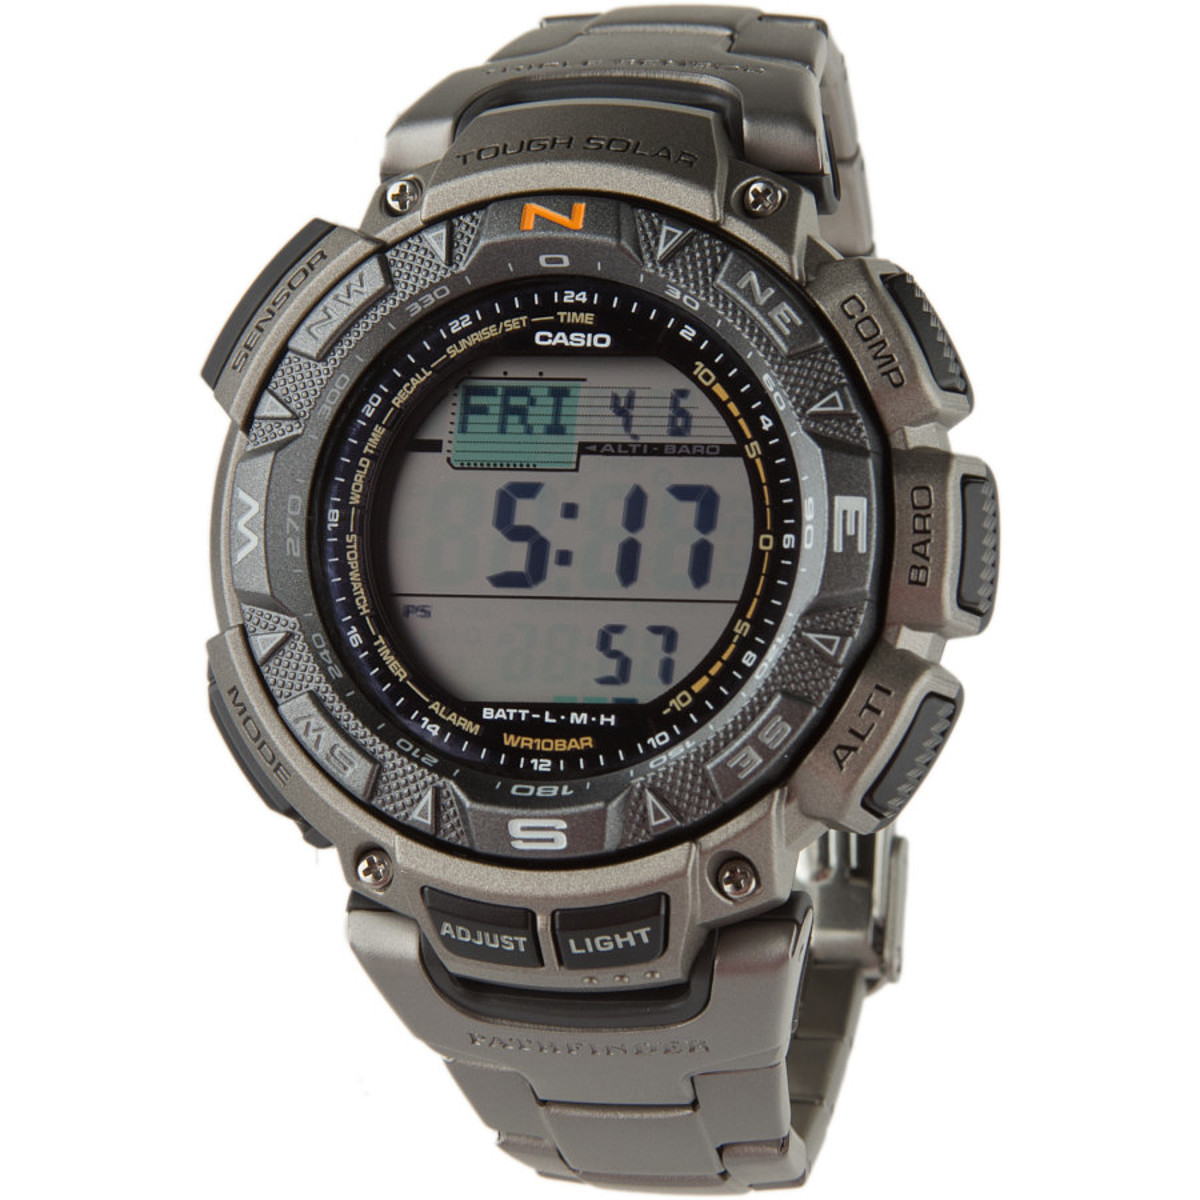 photo: Casio PAG240T-7 compass watch